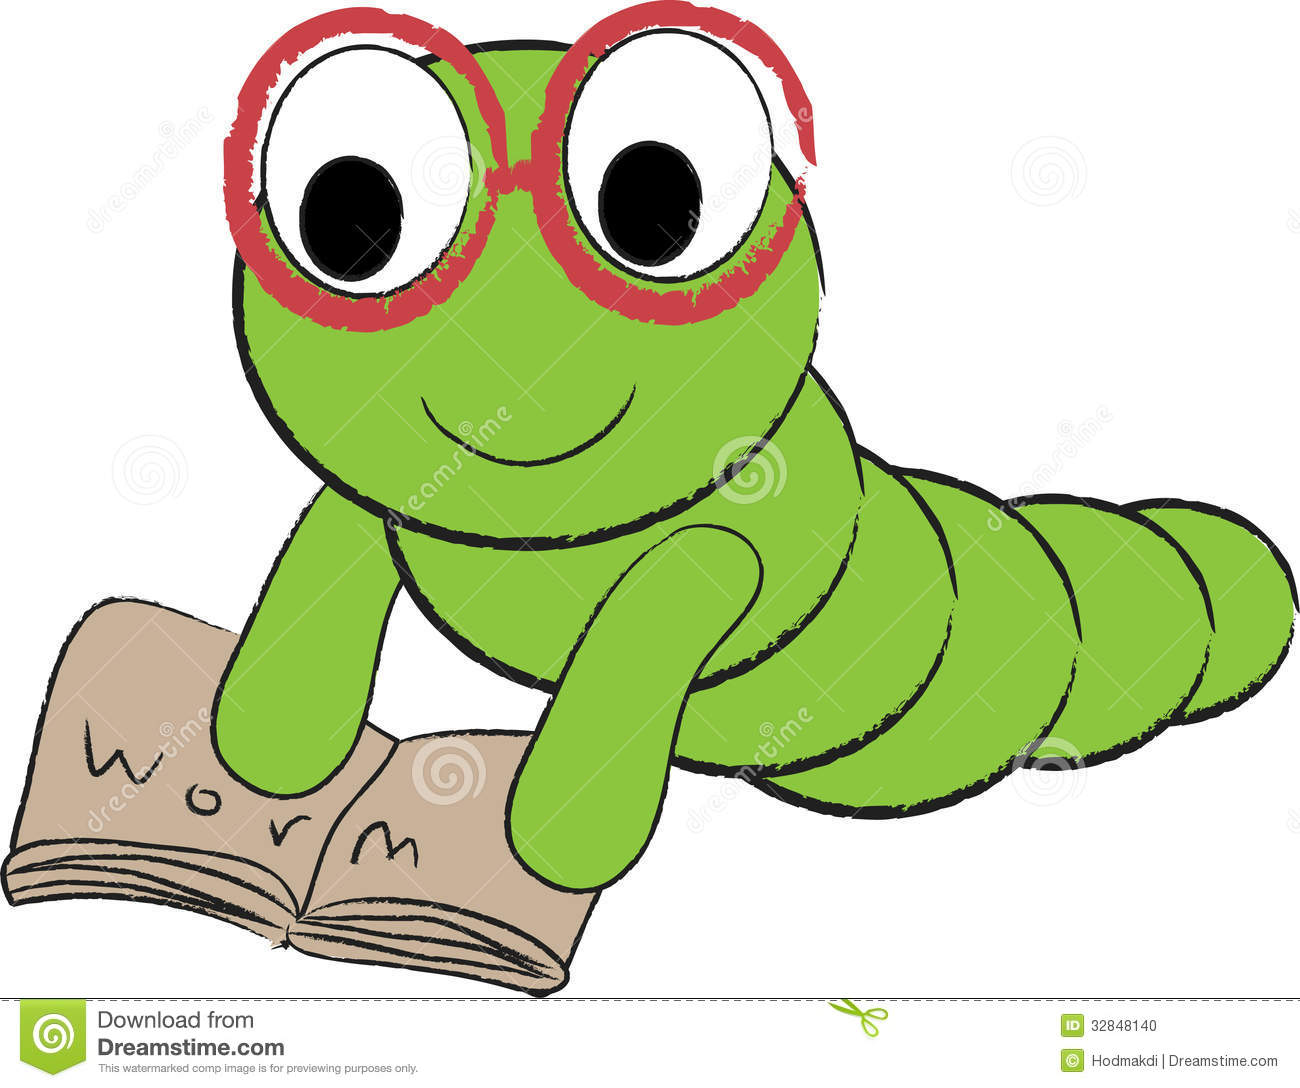 Free Book Worm Cliparts, Download Free Clip Art, Free Clip Art on.